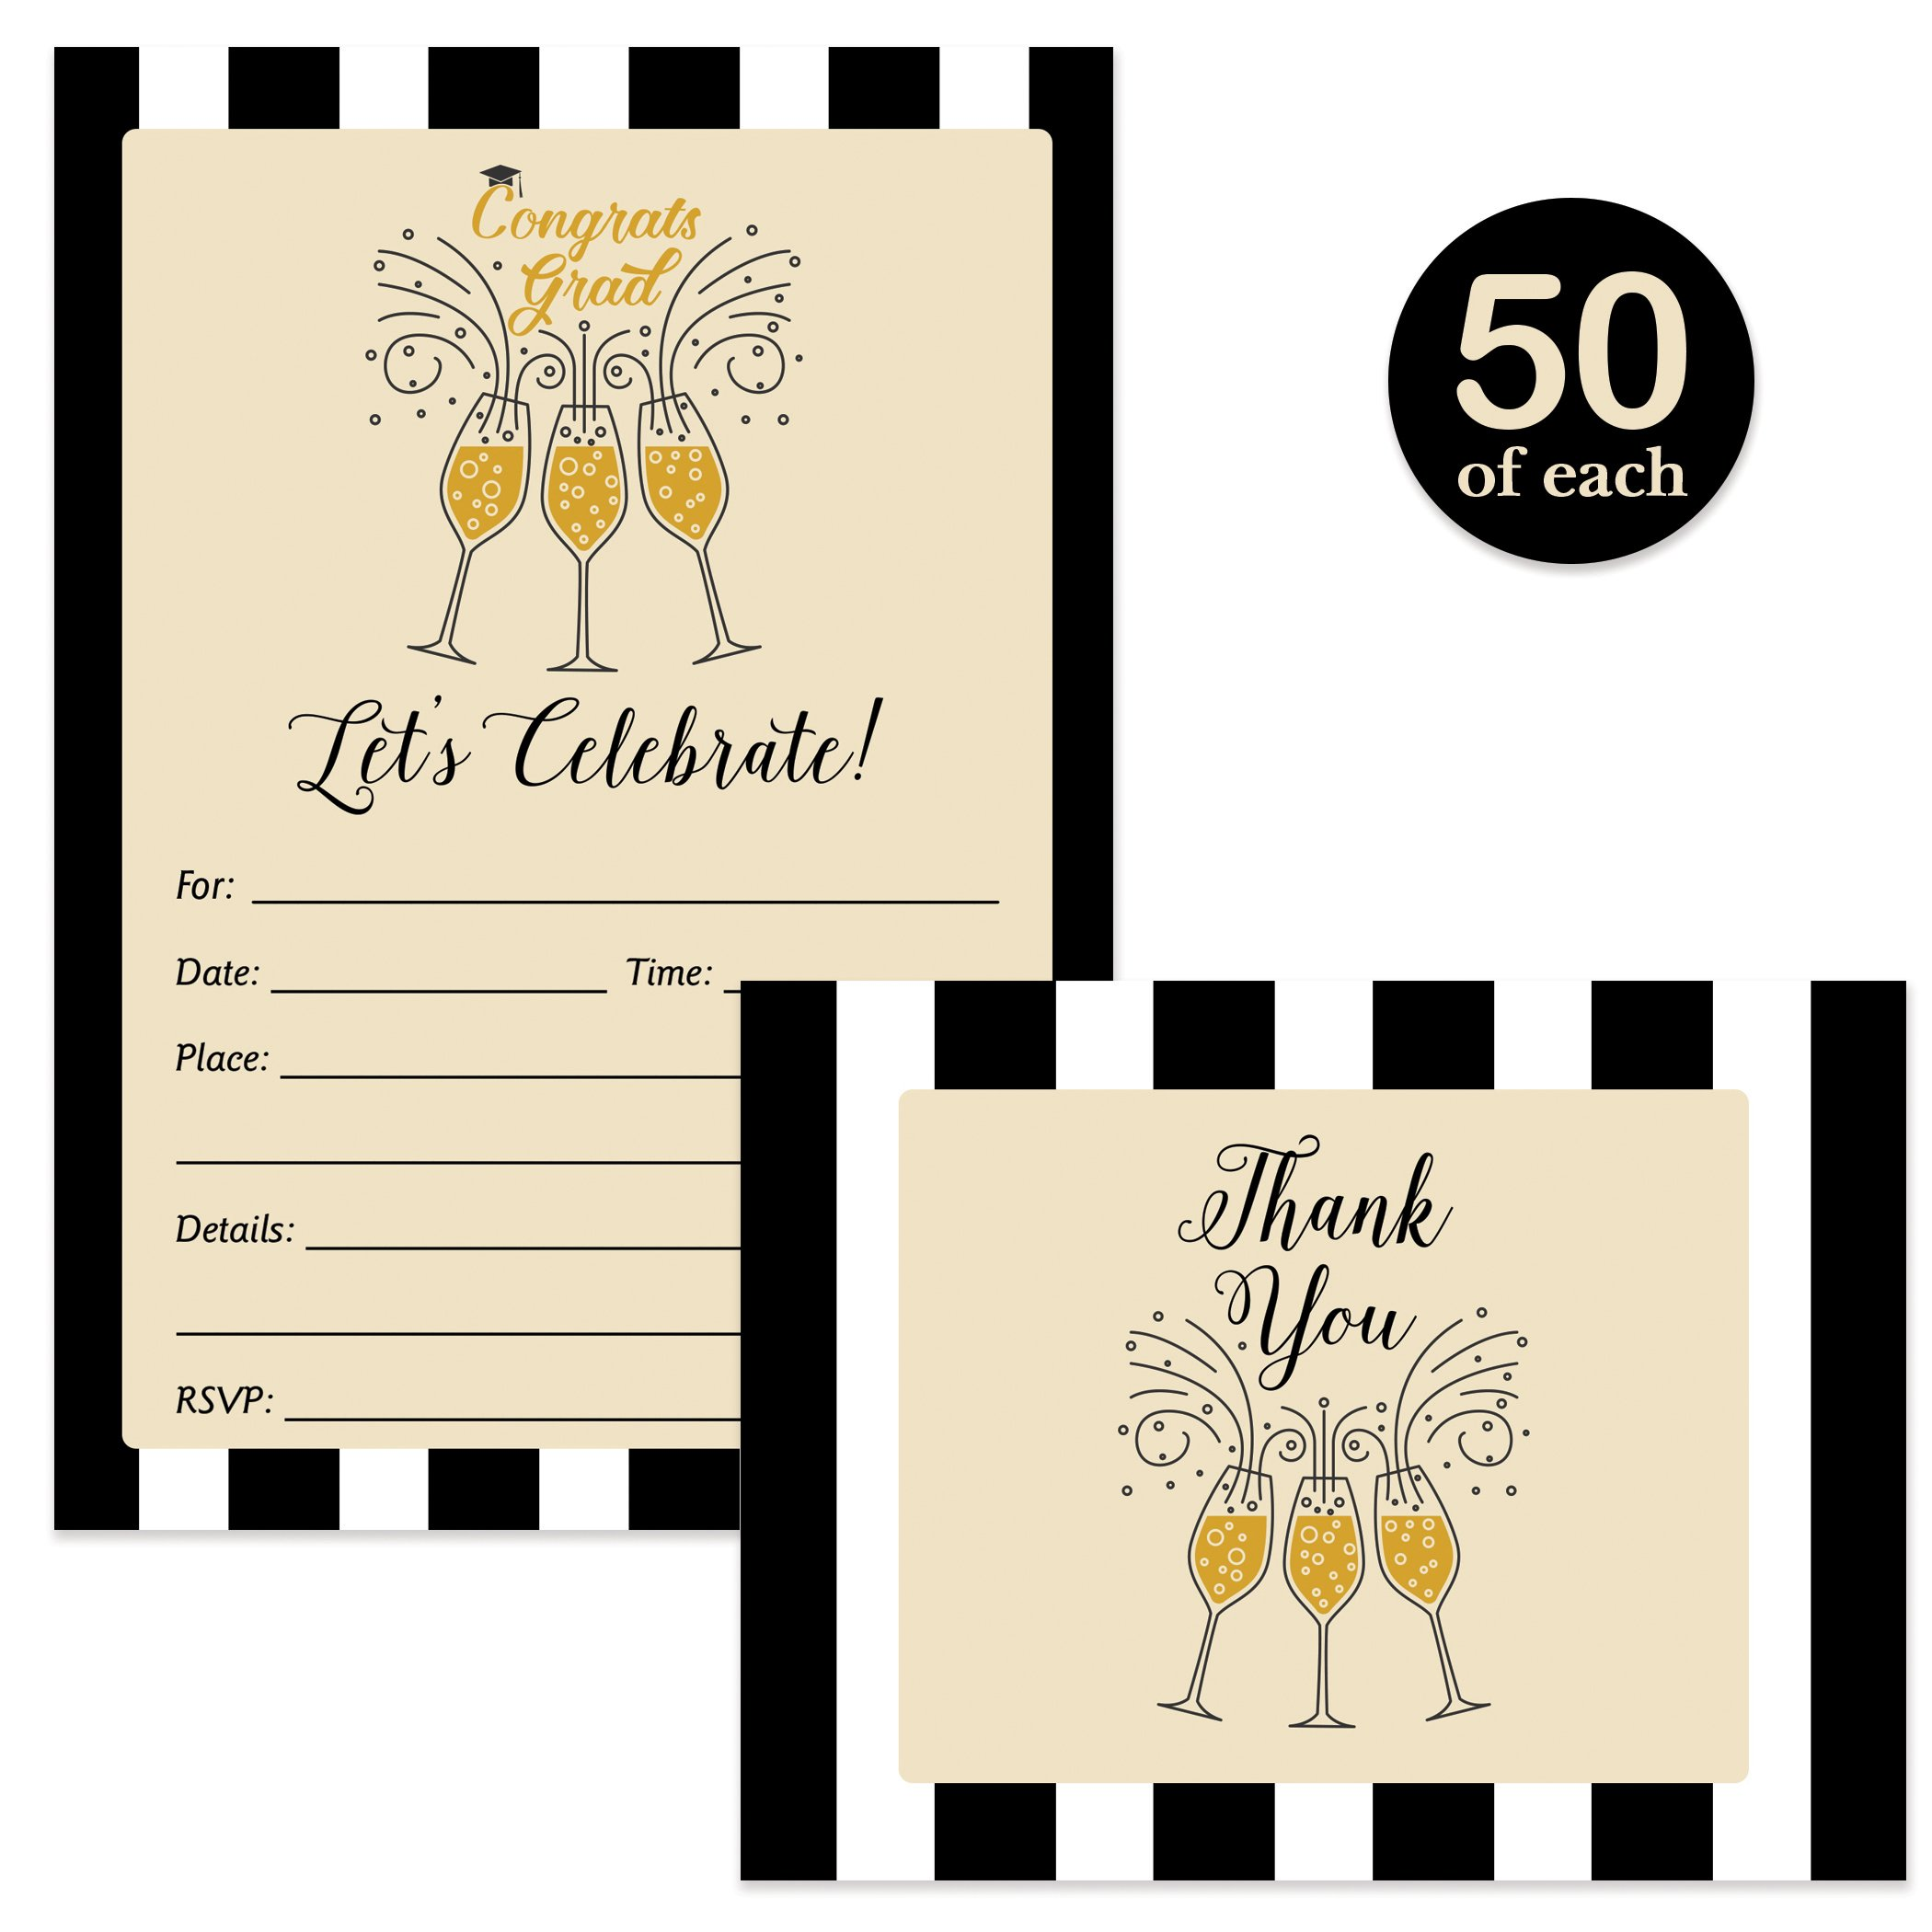 Graduation Invites & Thank You Cards Pop-the-Champagne Set Matching Invitations & Thank You Notecards with Envelopes ( 50 of Each ) Fill-In College High School Grad Party Invite Excellent Value Pair